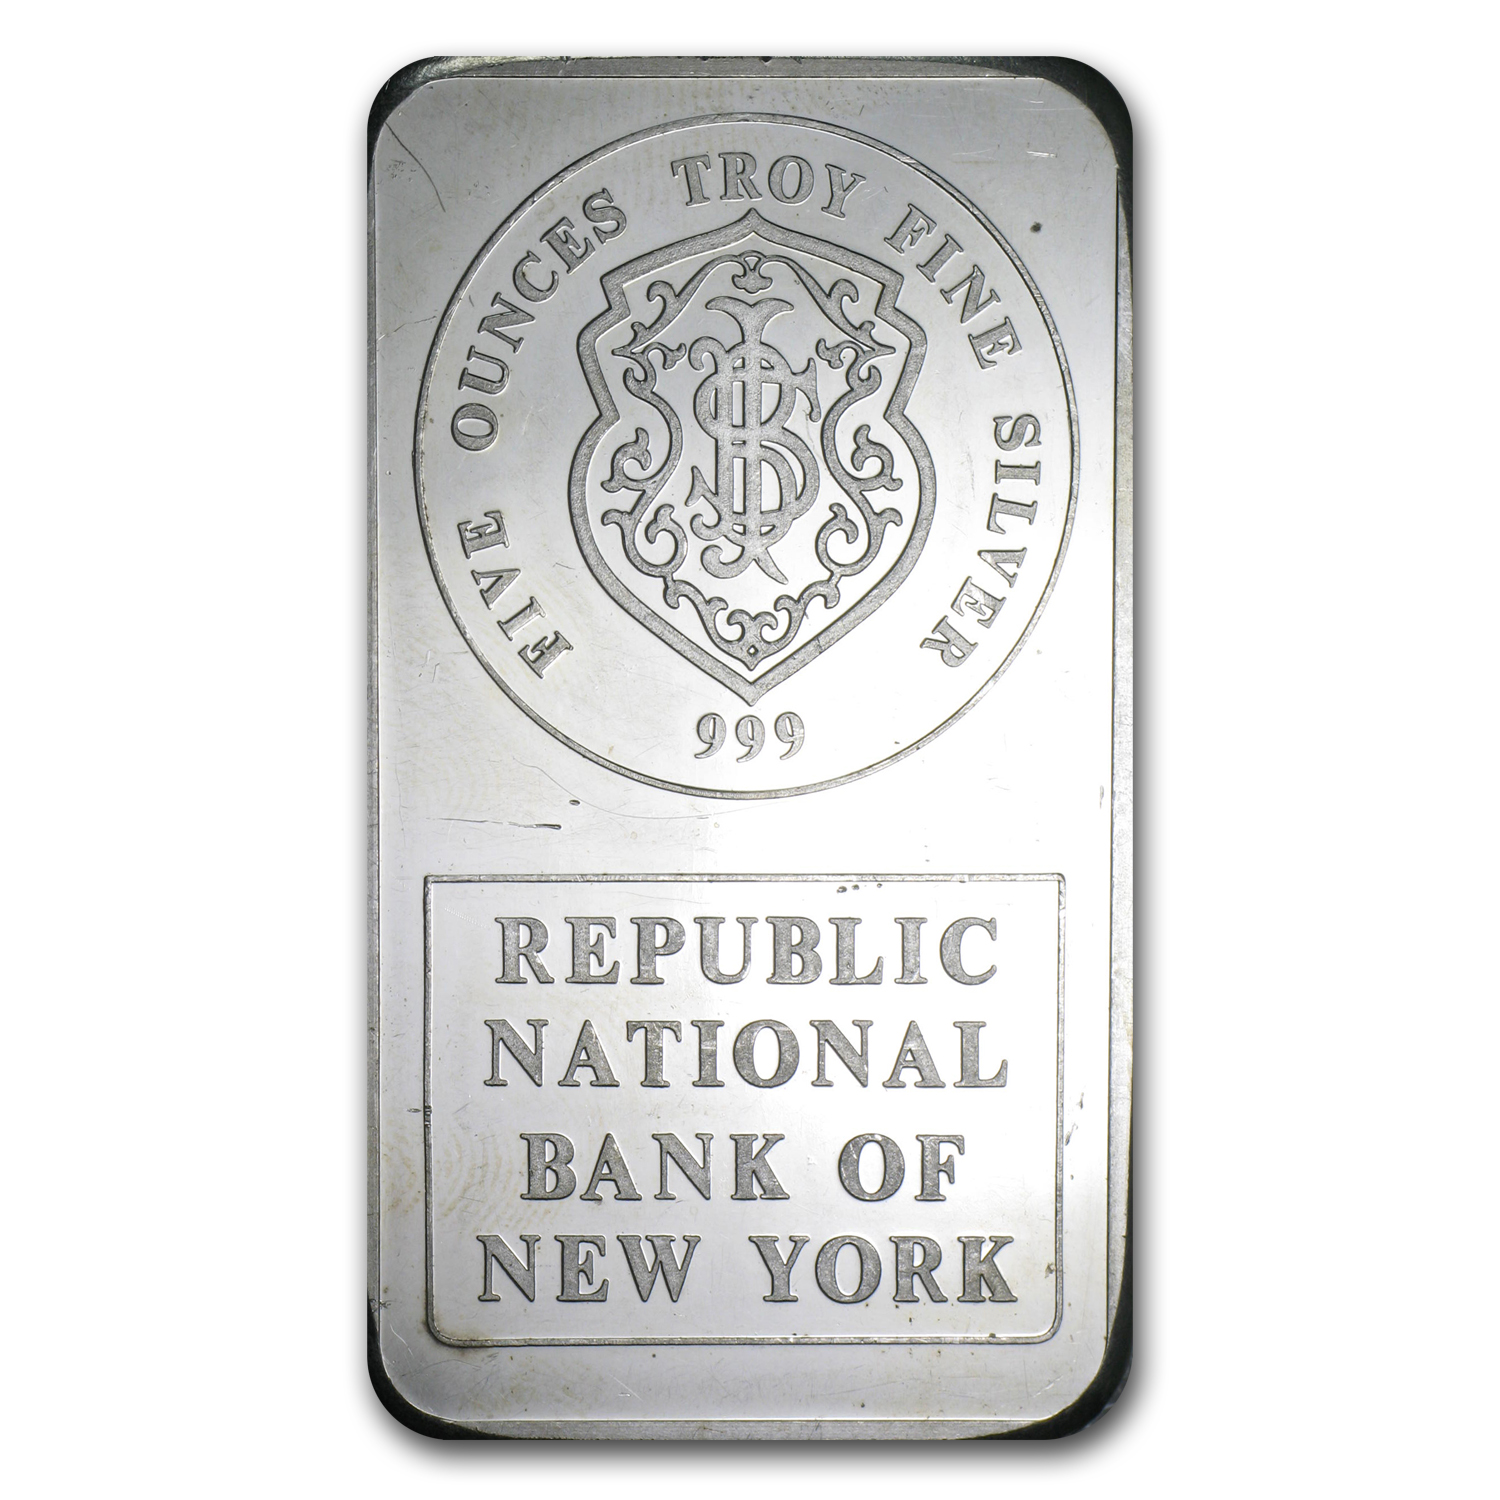 5 oz Silver Bar - Johnson Matthey (Republic National Bank of NY)